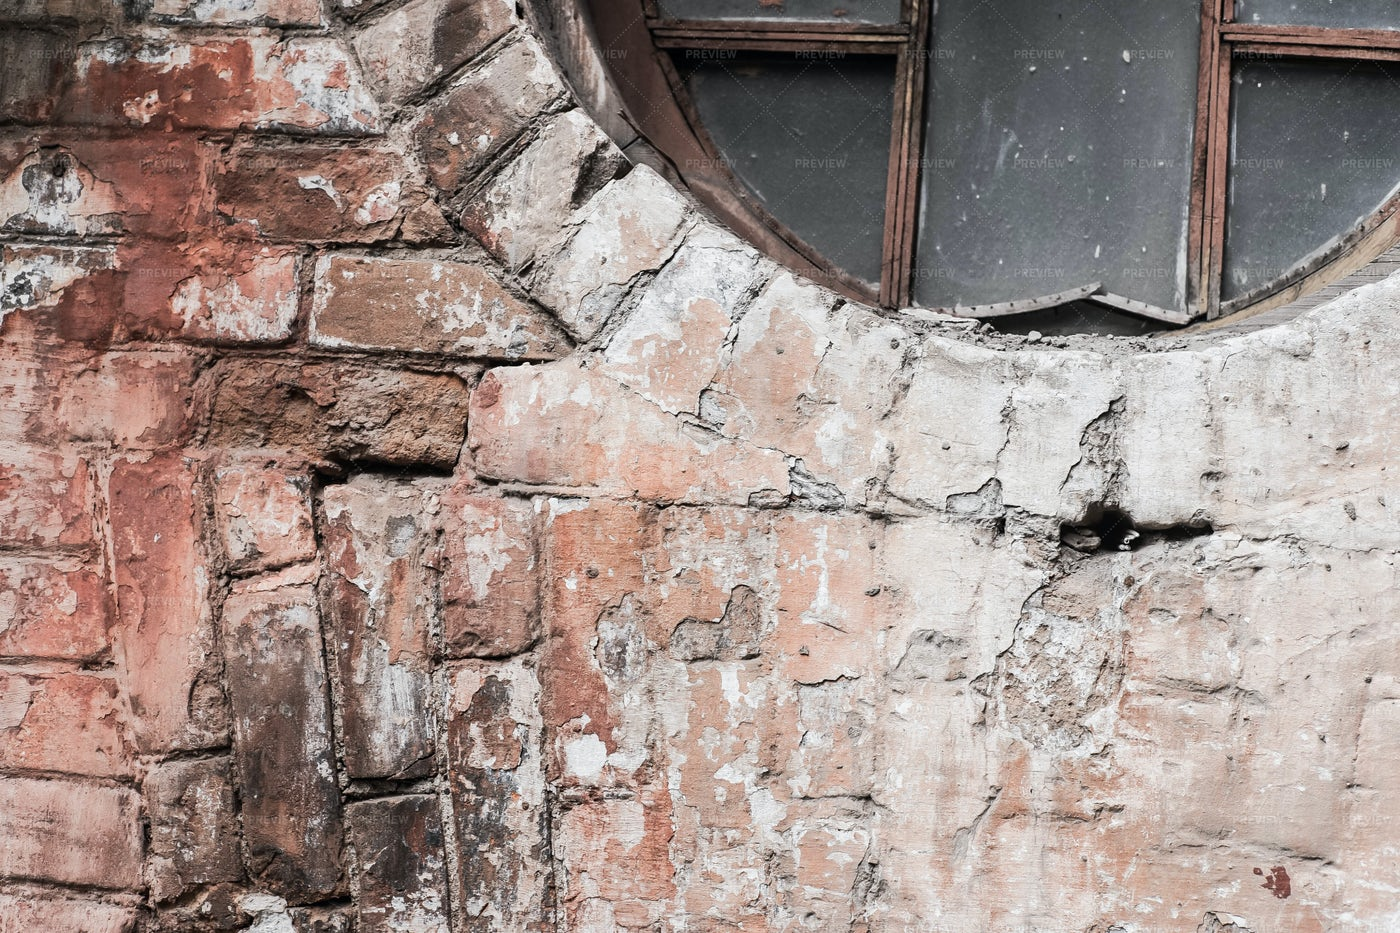 Old Brick Wall With Round Window: Stock Photos